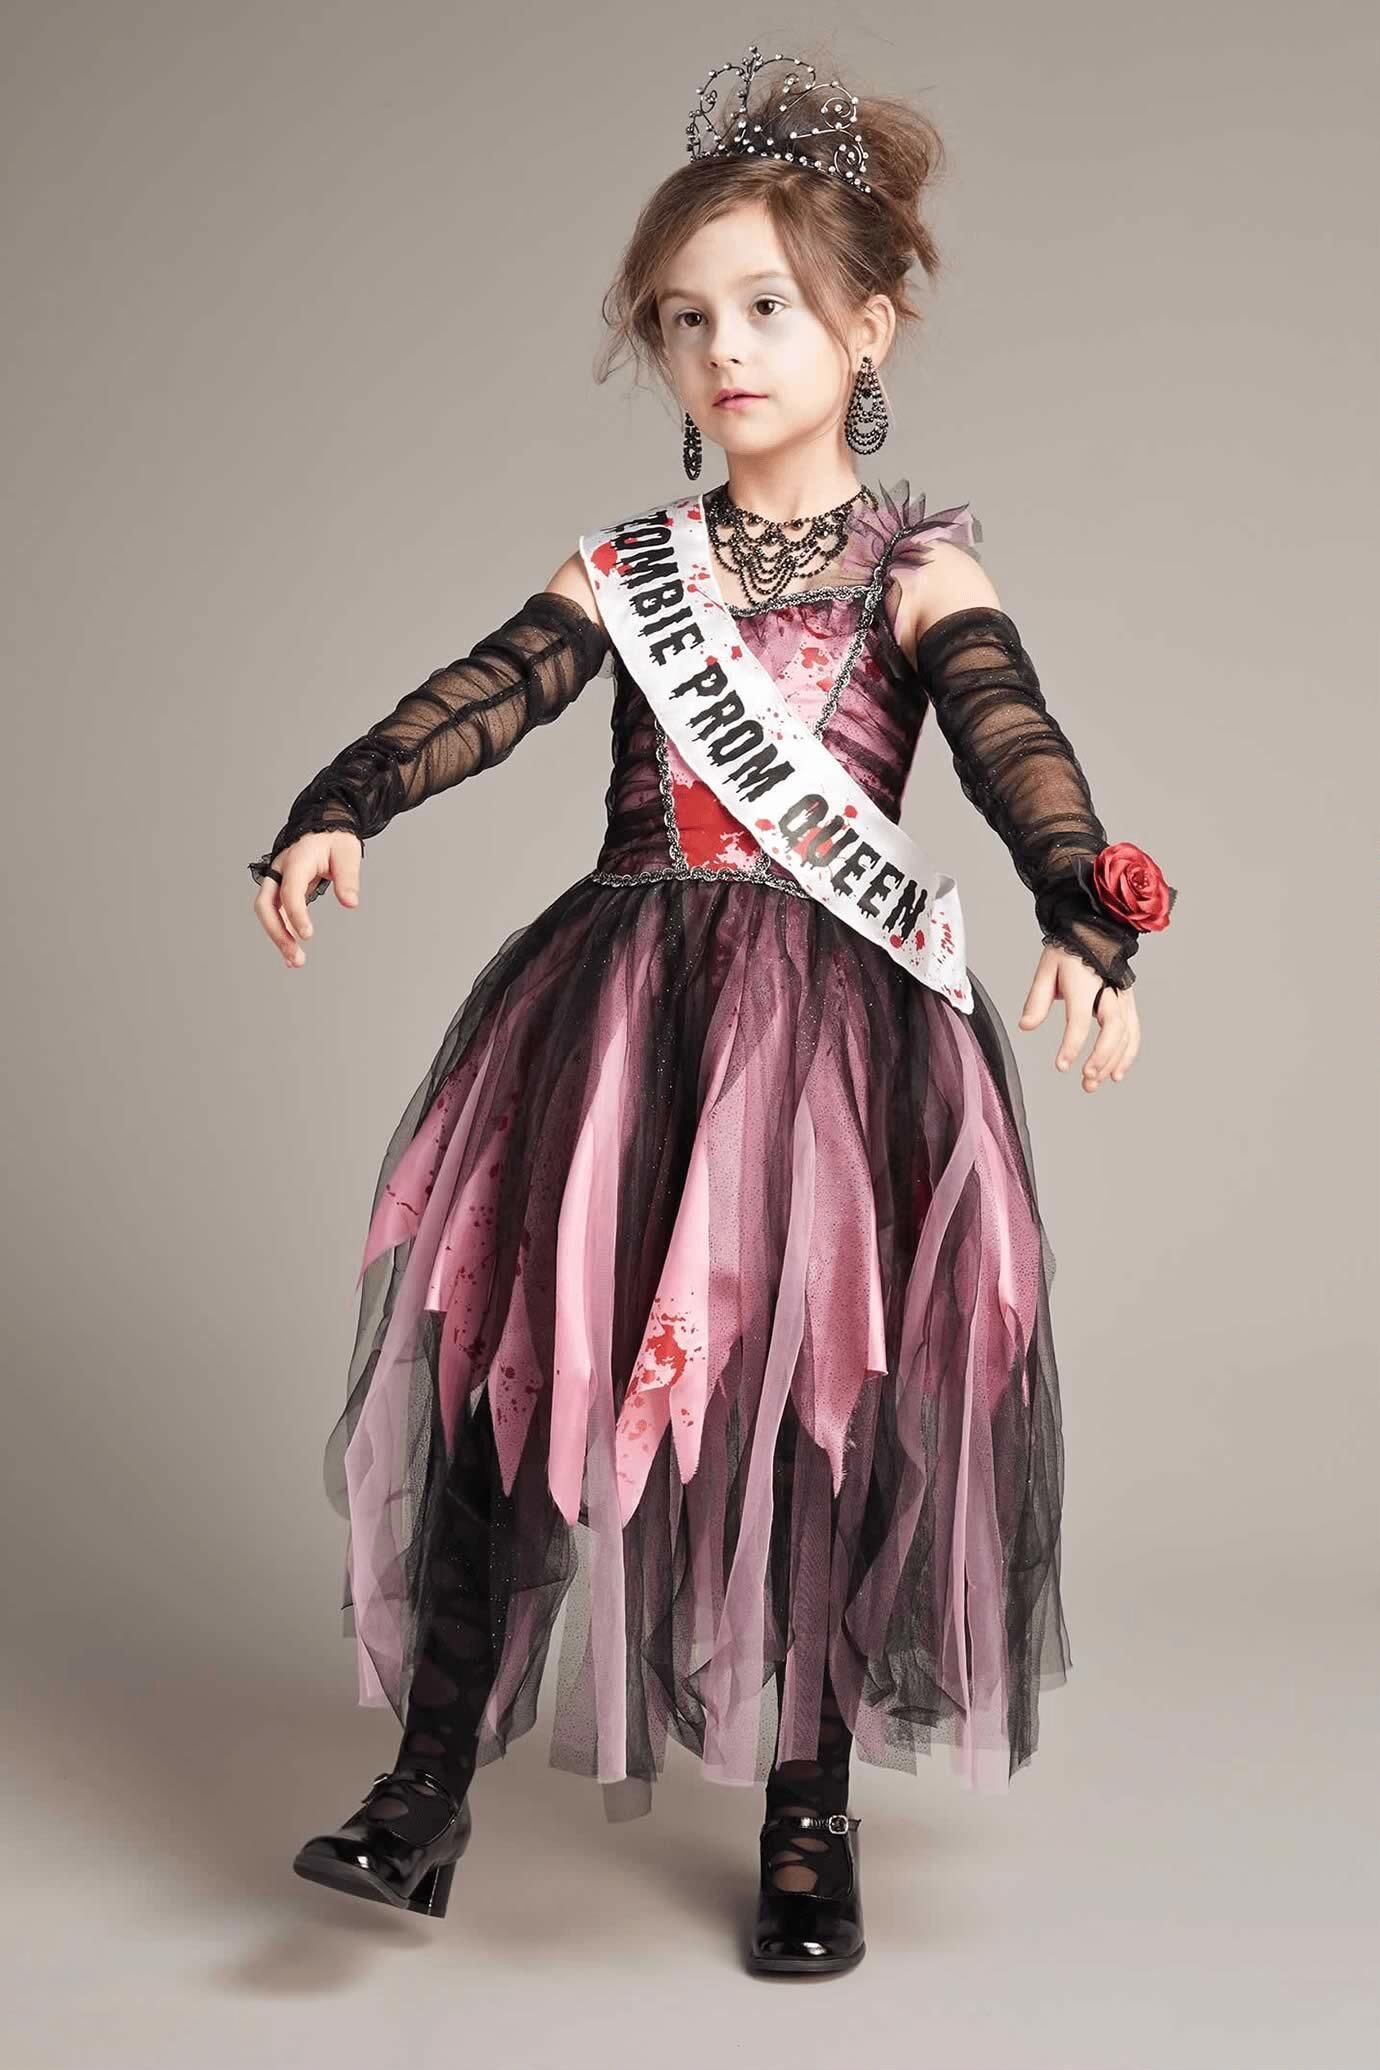 Scary Halloween Costumes For Kids Girls Uk.Zombie Prom Queen Costume For Girls Chasingfireflies 9 97